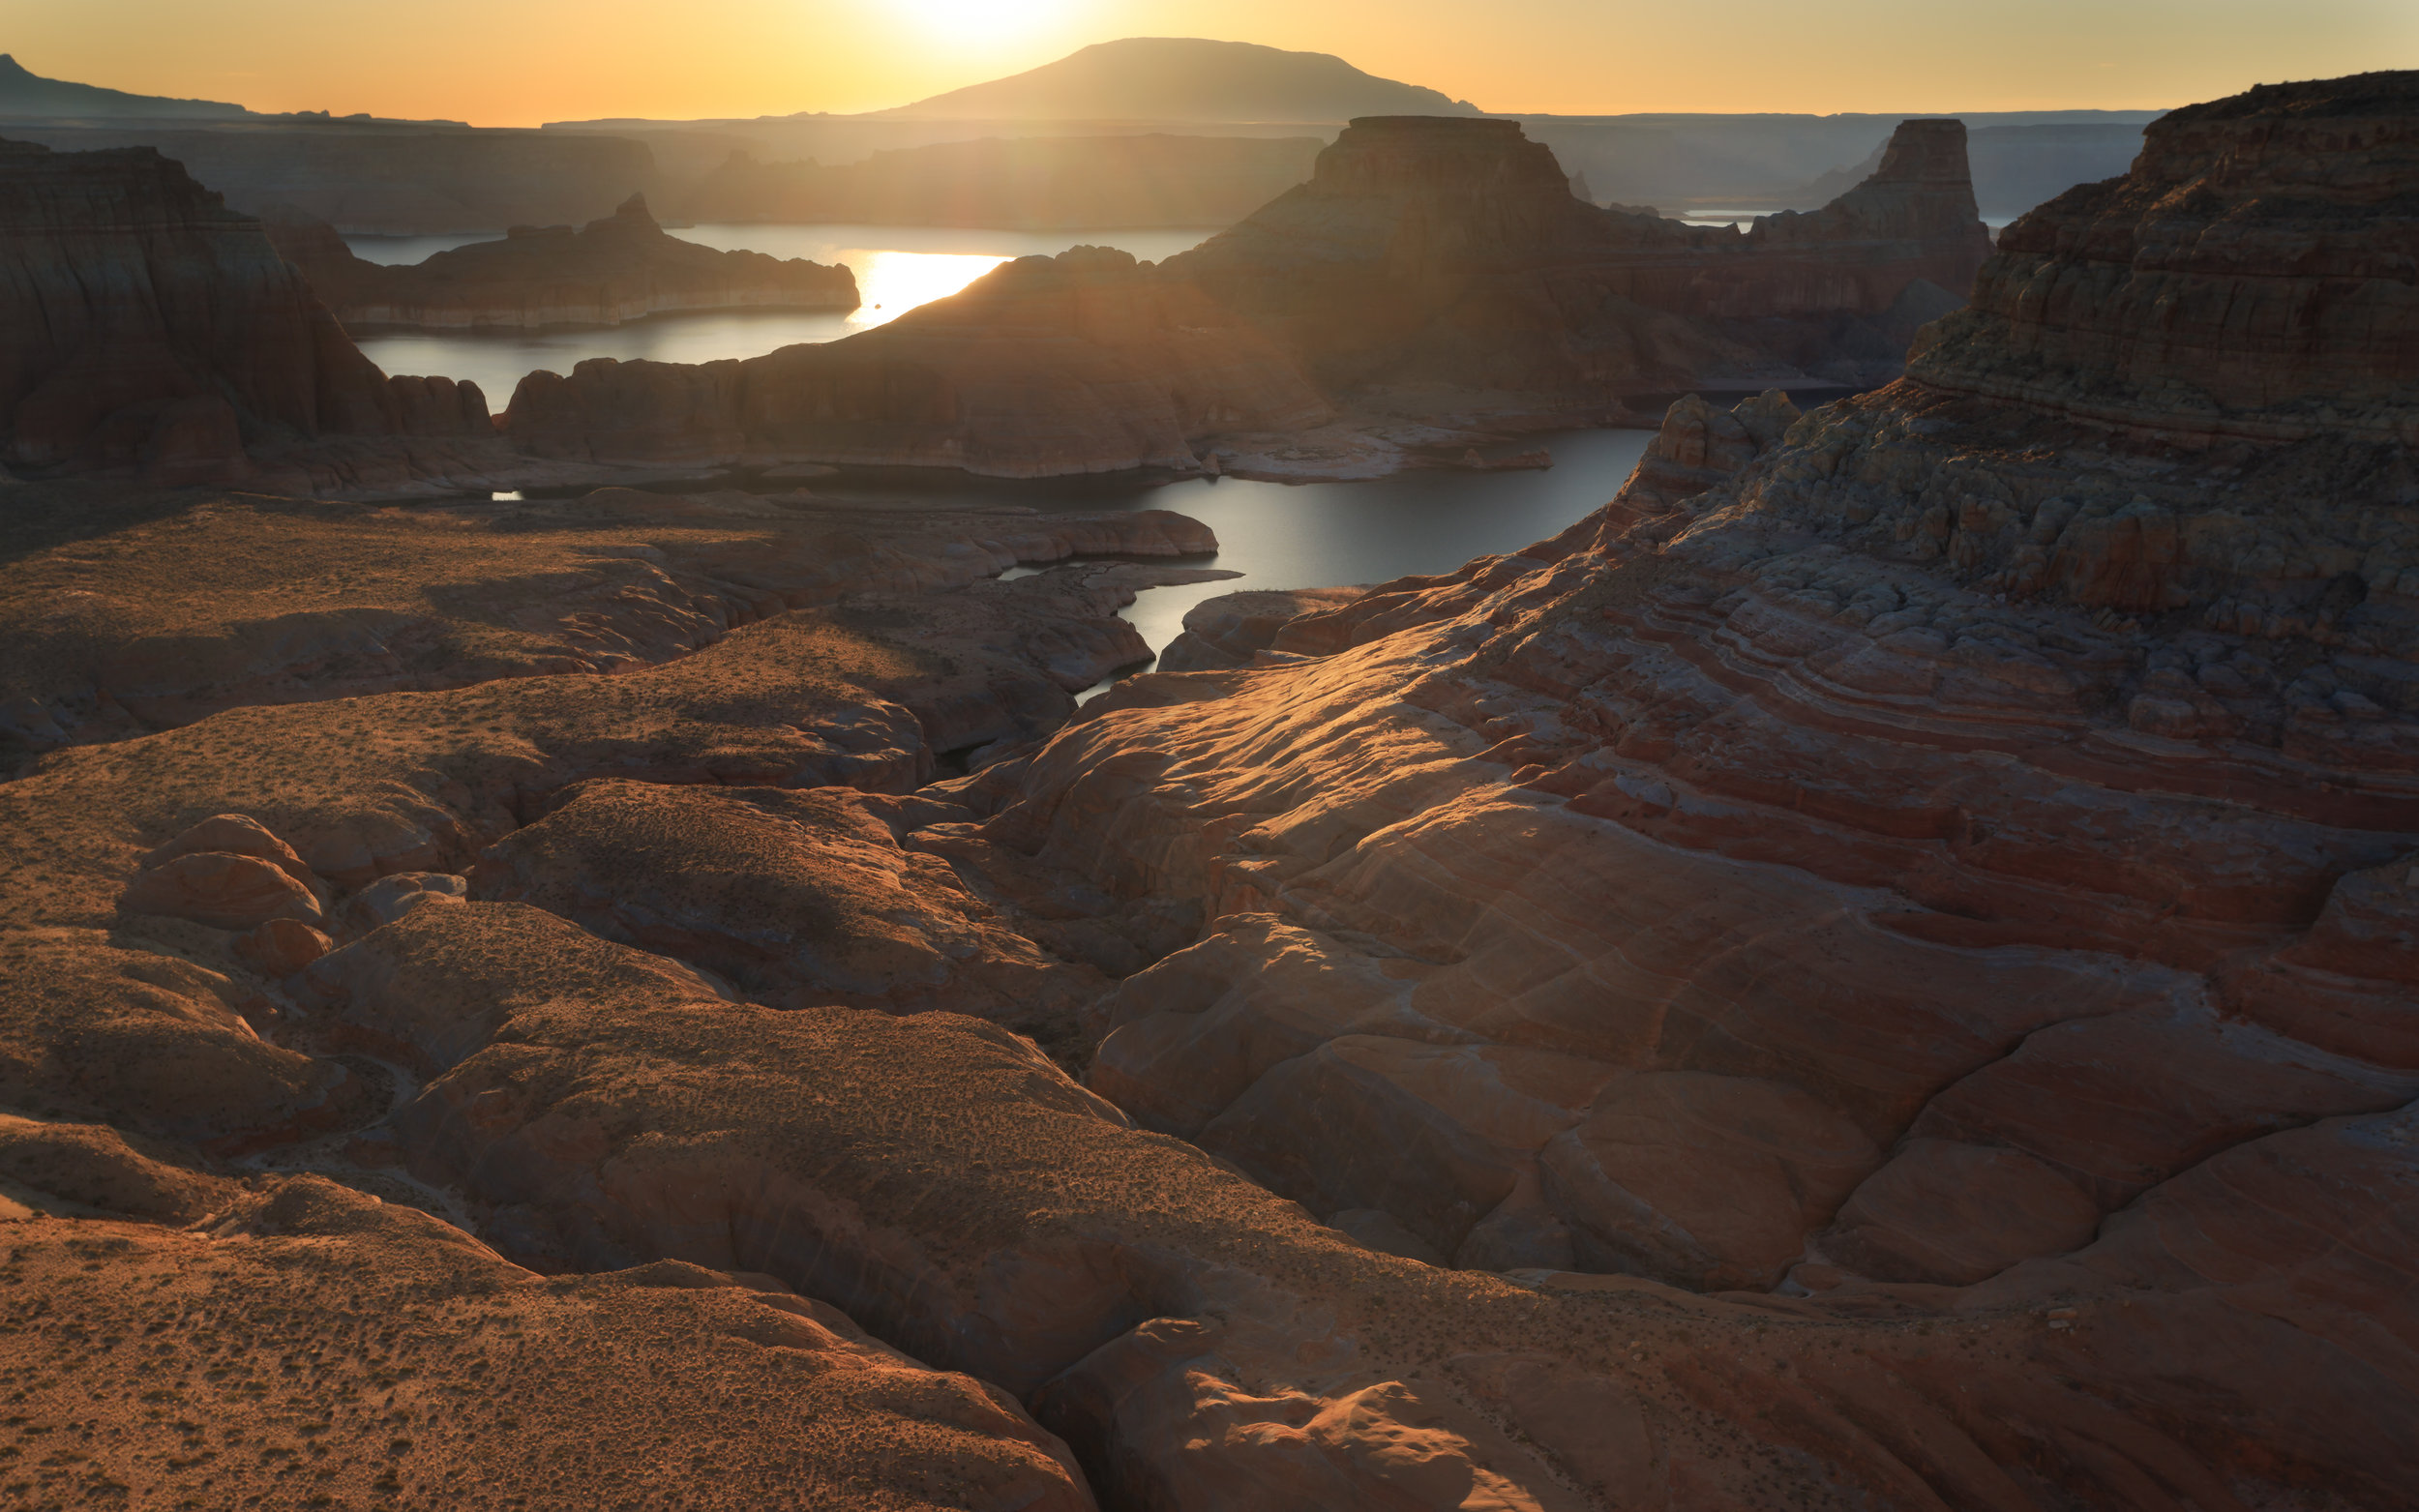 Alstrom Point_Lake Powell_Sunrise_v1 04.29.2018.jpg